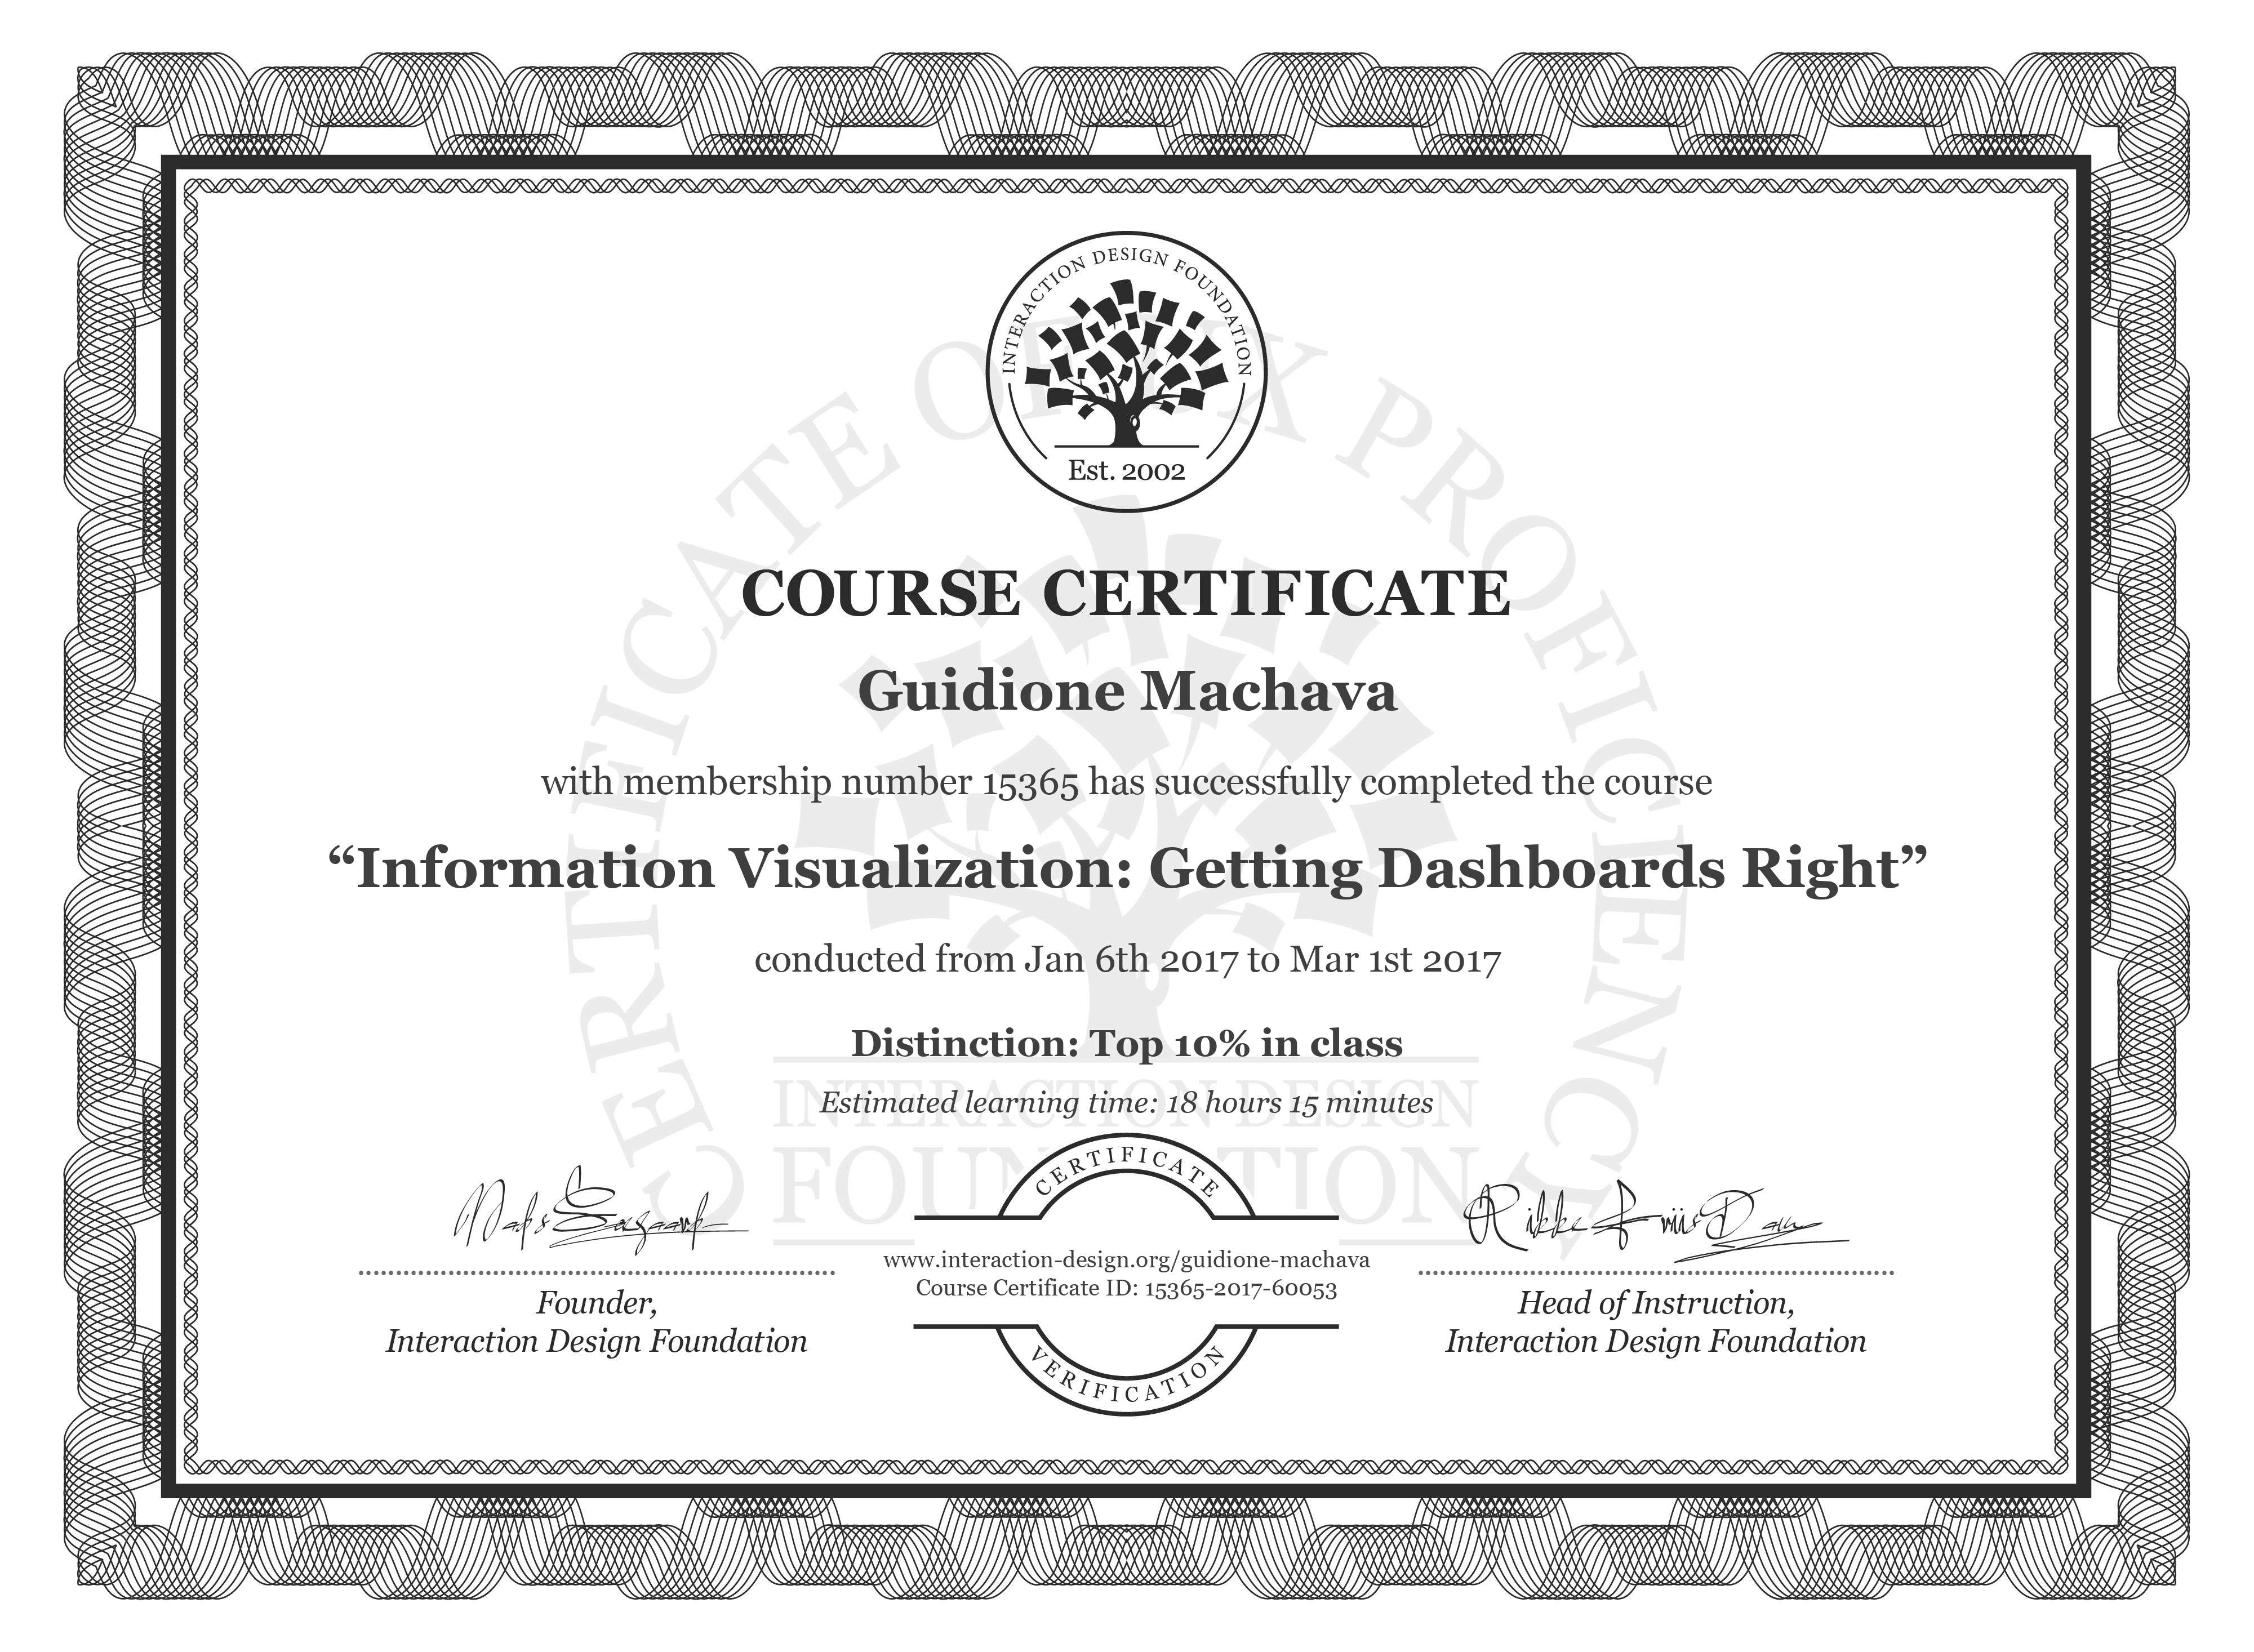 Guidione Machava's Course Certificate: Information Visualization: Getting Dashboards Right